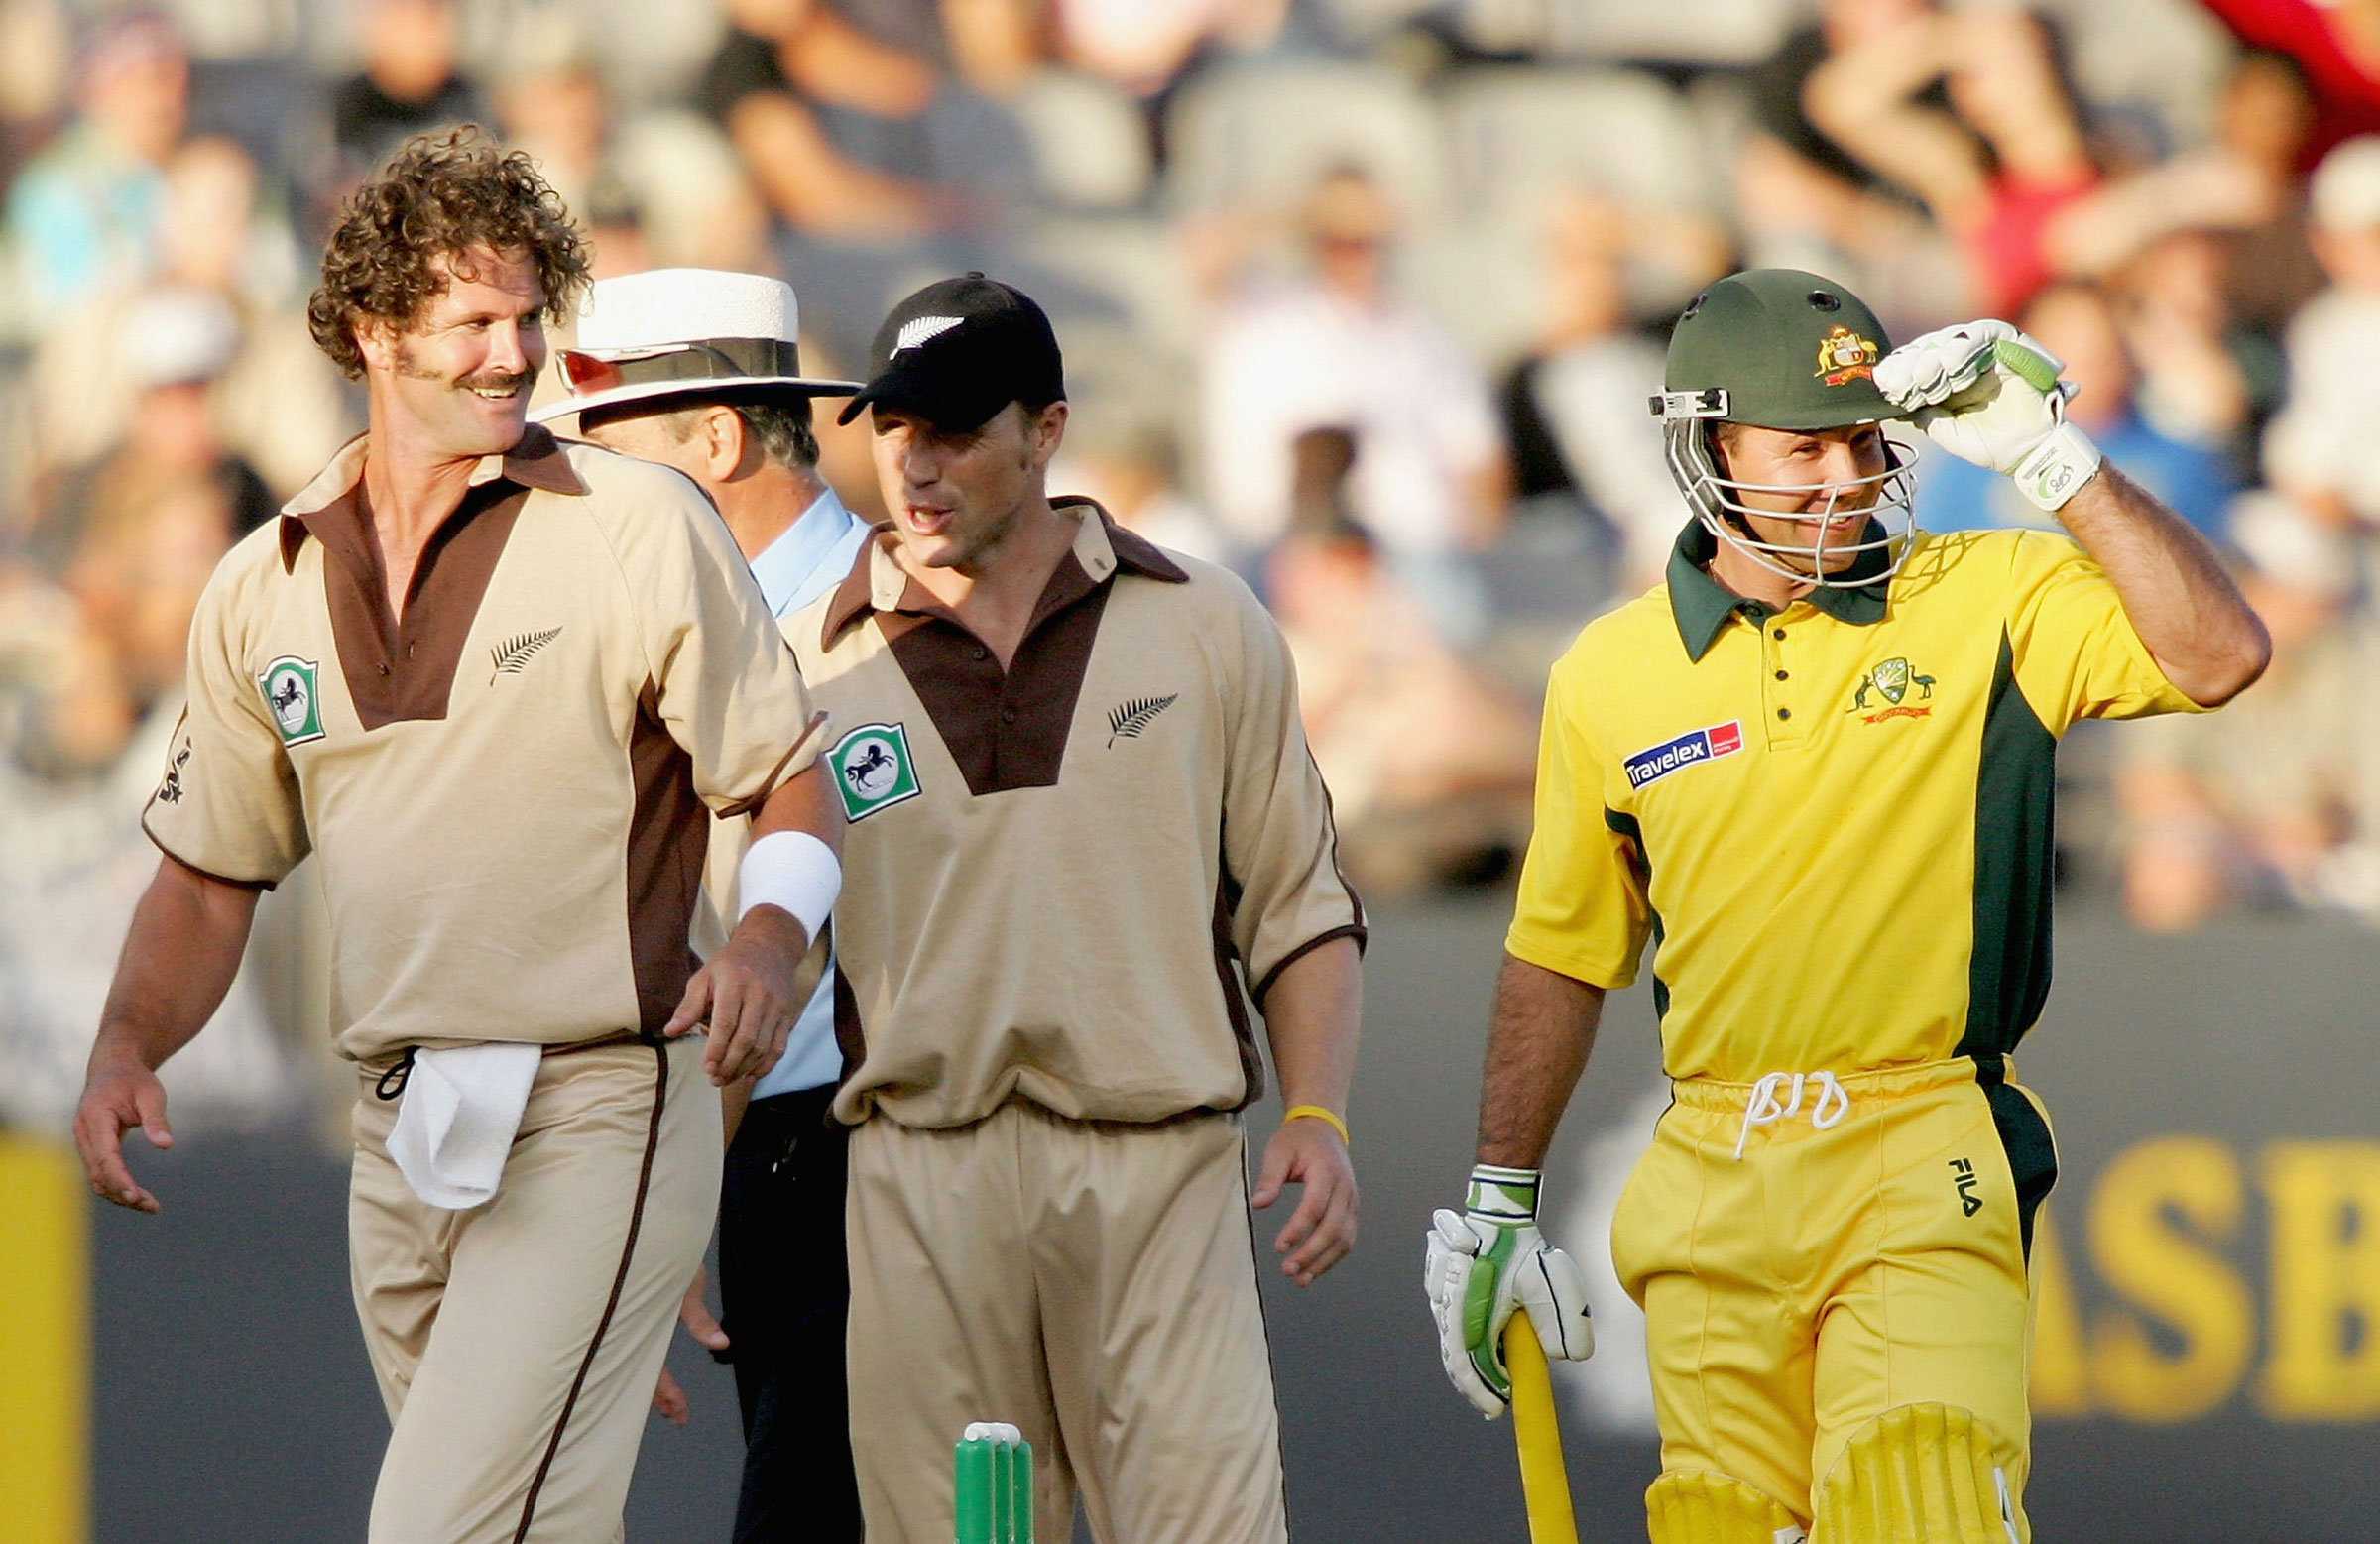 Ricky Ponting starred in that first T20I // Getty